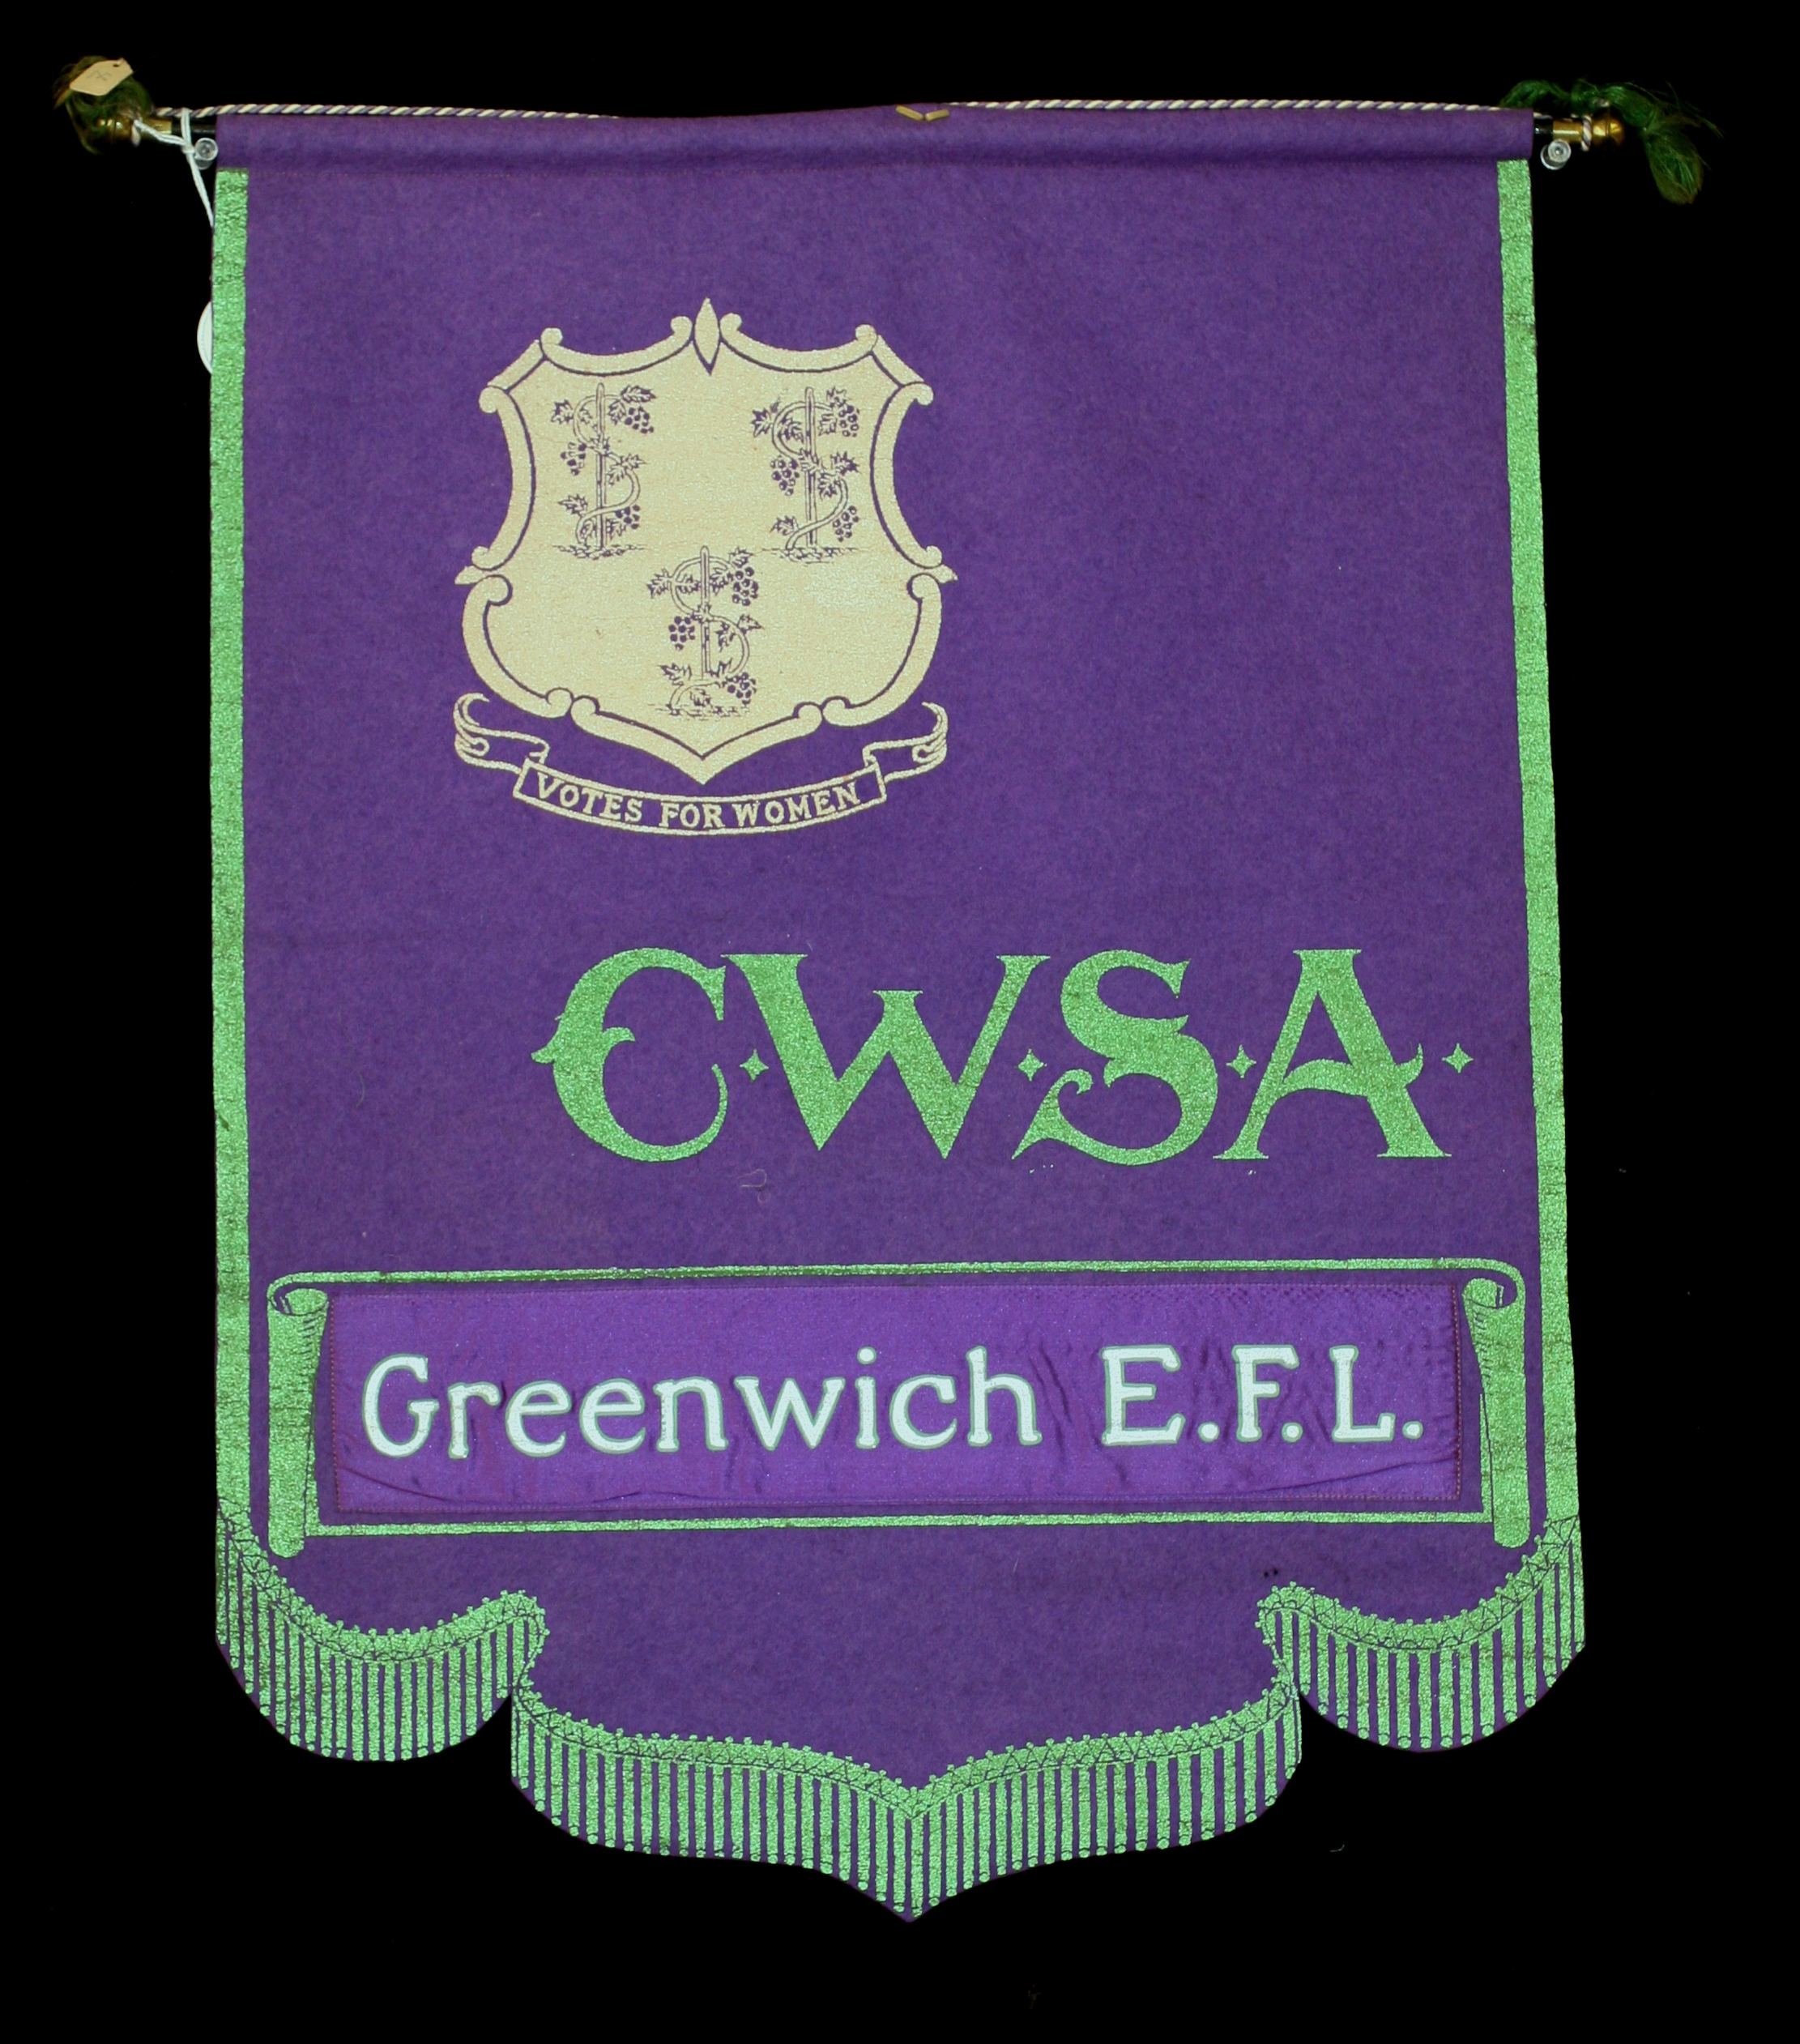 Banner for C.W.S.A. Greenwich